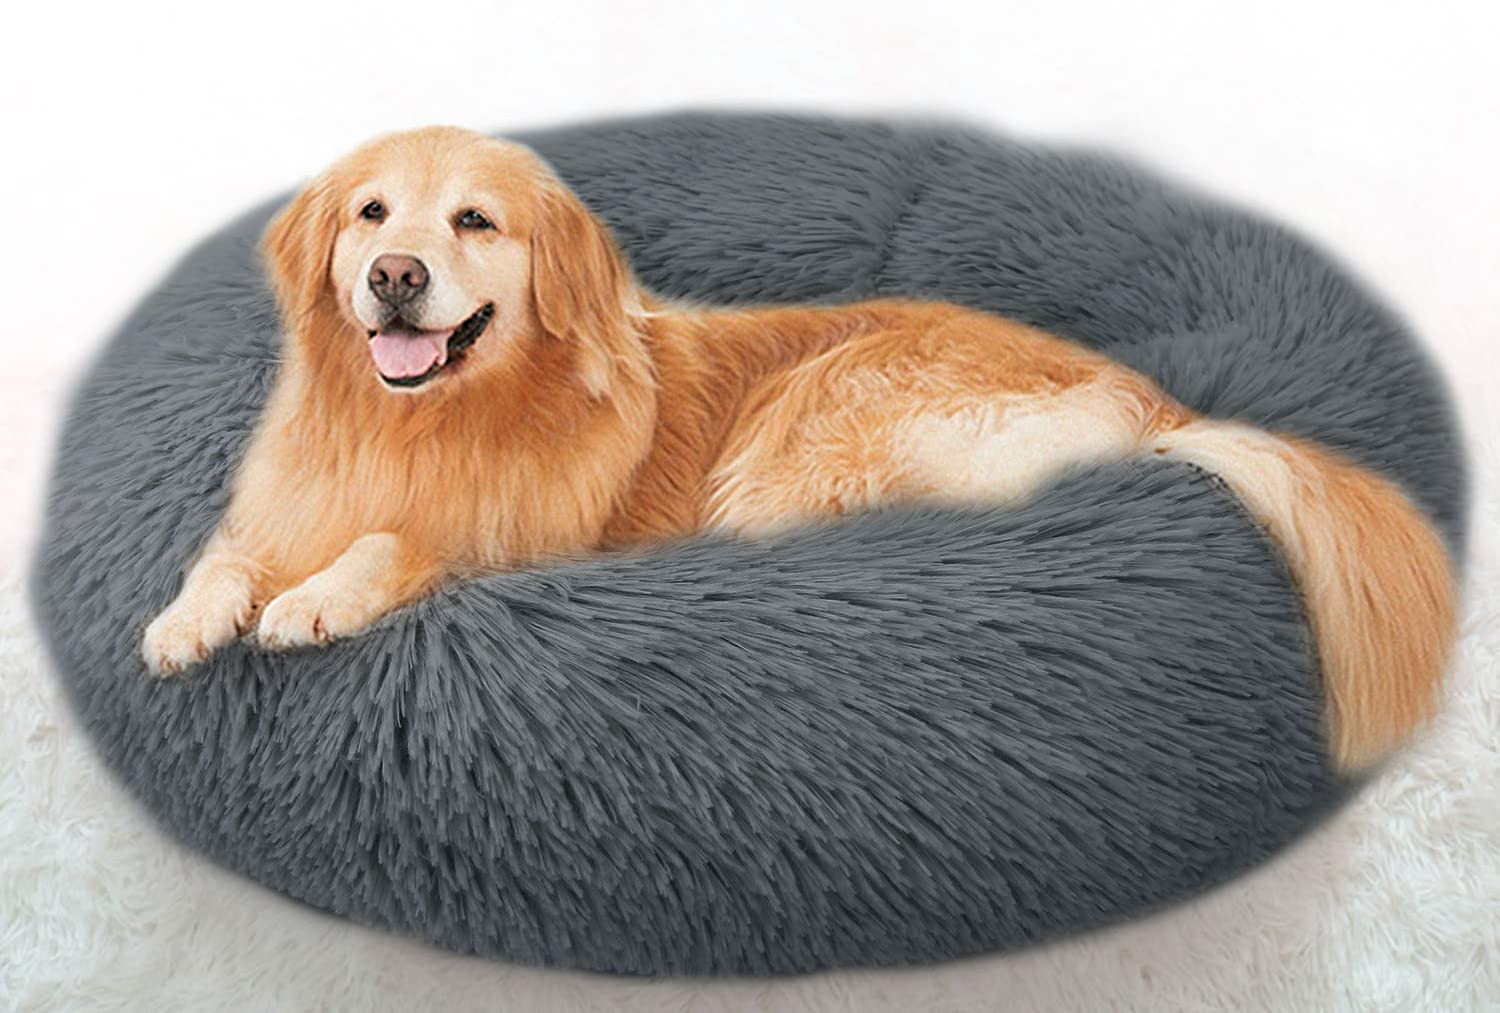 Panda Grip Cat Beds for Indoor Cats, Round Donut Cuddler Dog Bed for Small Dog and Cat Fluffy Pet Sofa Cushion for Snuggle Puppy Washable Self-Warming Soft Plush Marshmallow Dog Cat Bed 80cm Dark Grey